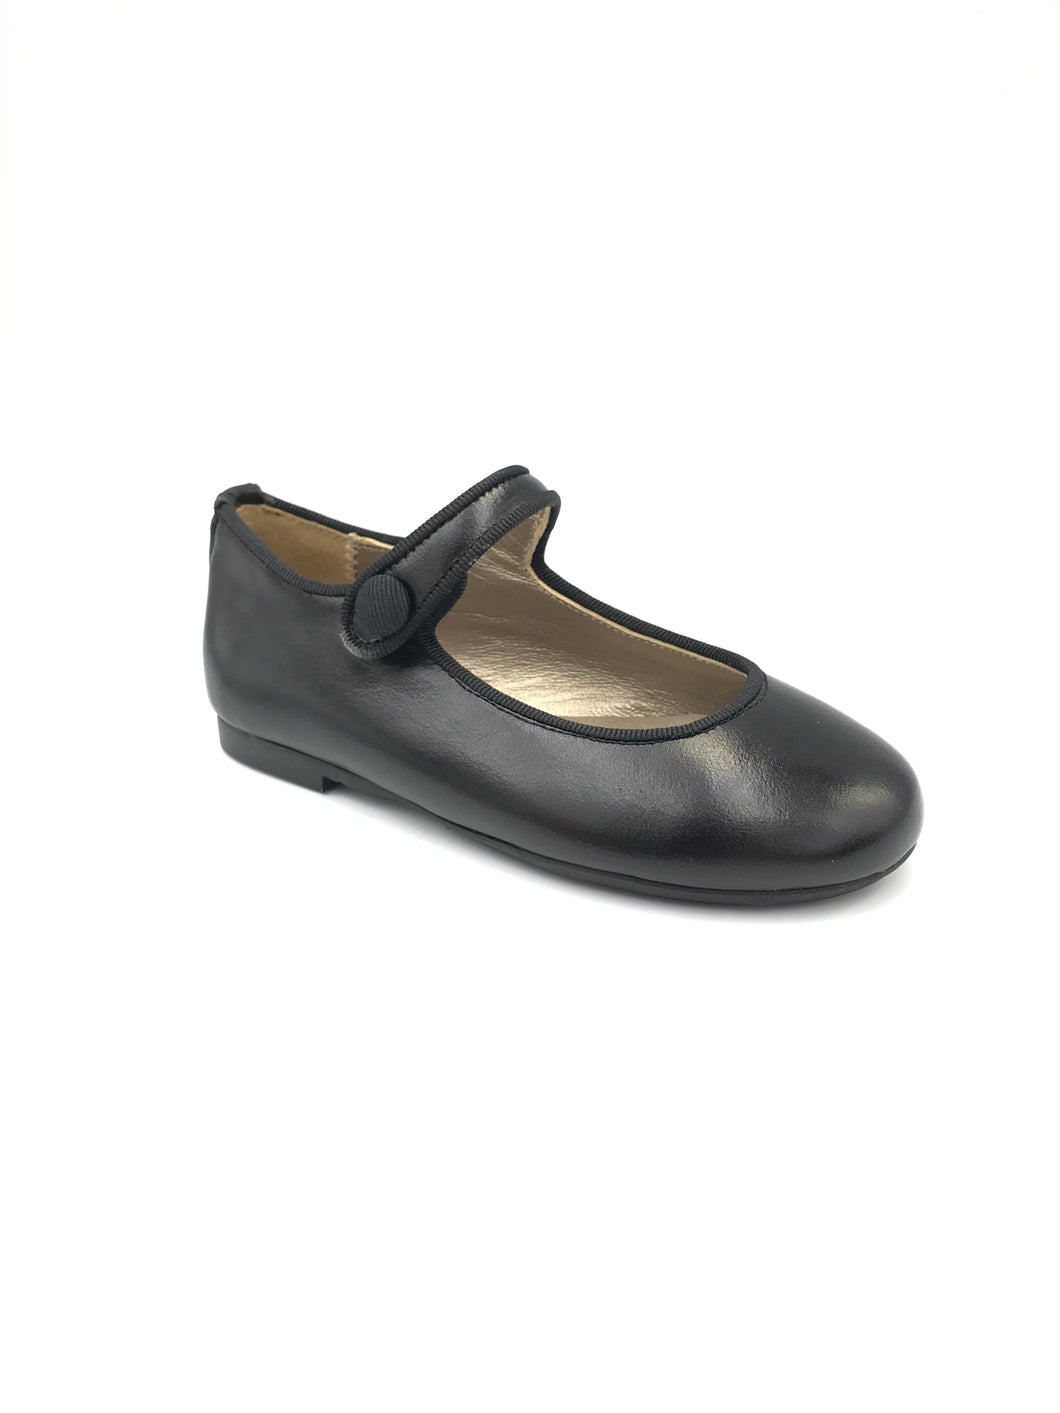 Papanatas Black Leather Mary Jane 6315Z